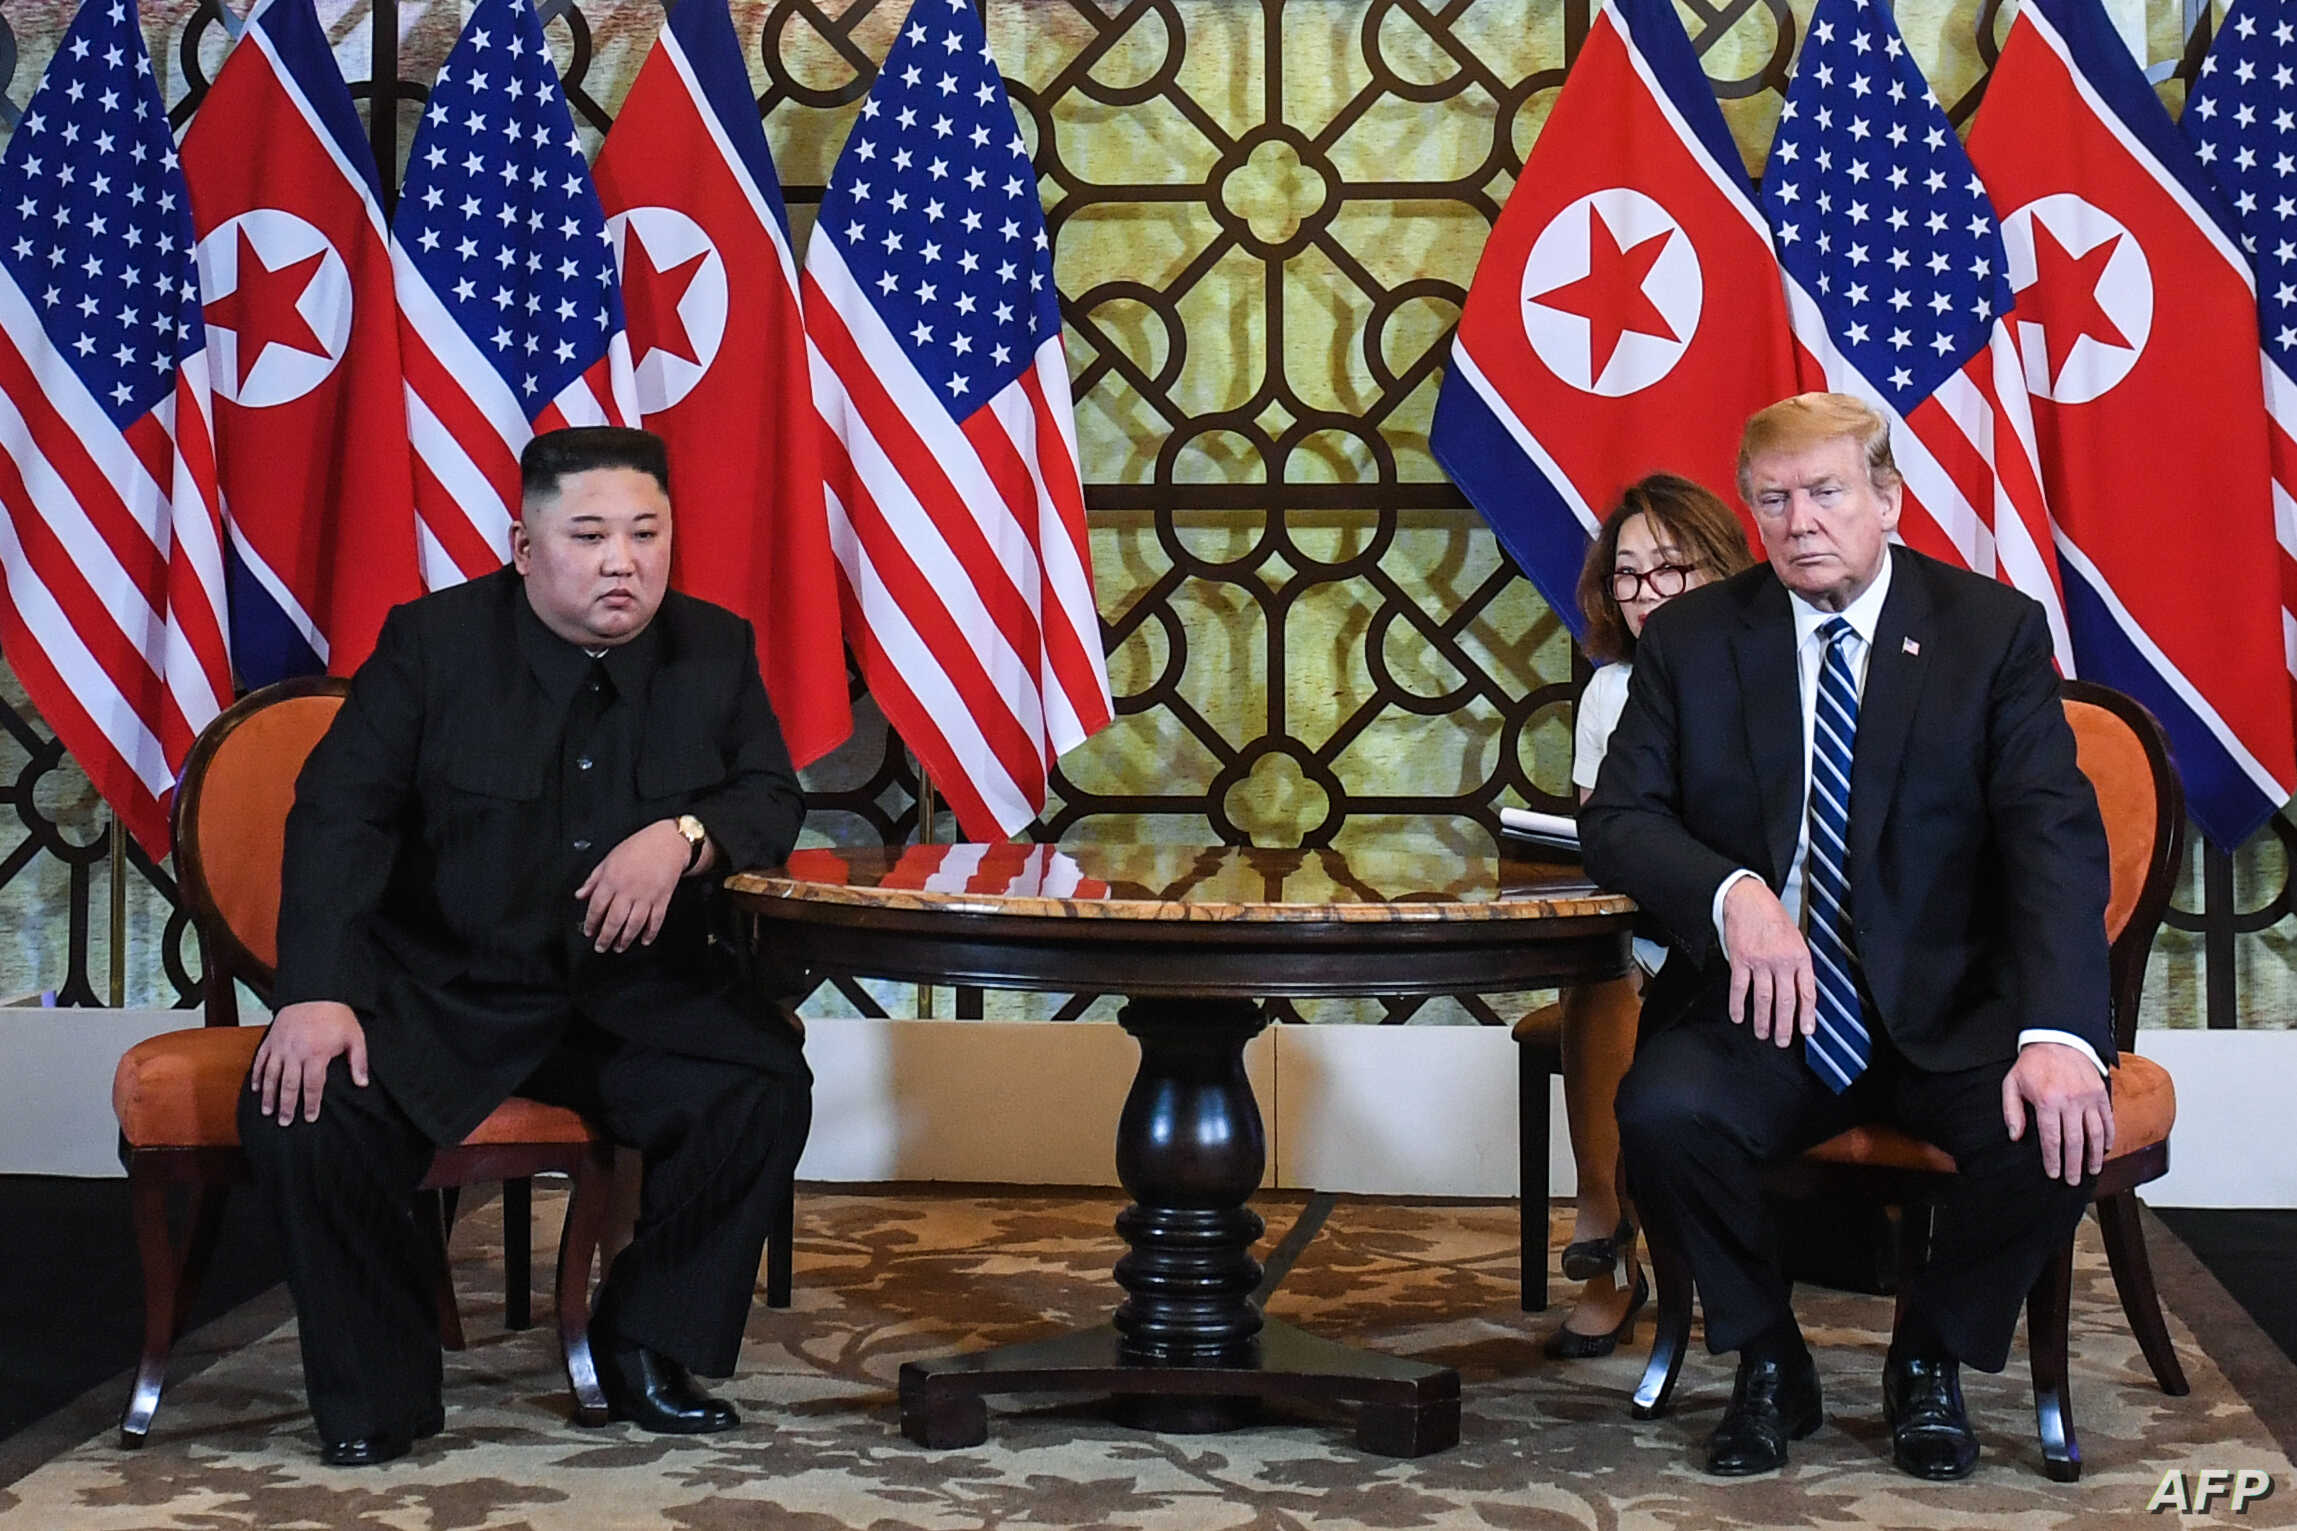 U.S. President Donald Trump and North Korea's leader Kim Jong Un meet during the second U.S.-North Korea summit at the Sofitel Legend Metropole hotel in Hanoi, Feb. 28, 2019.